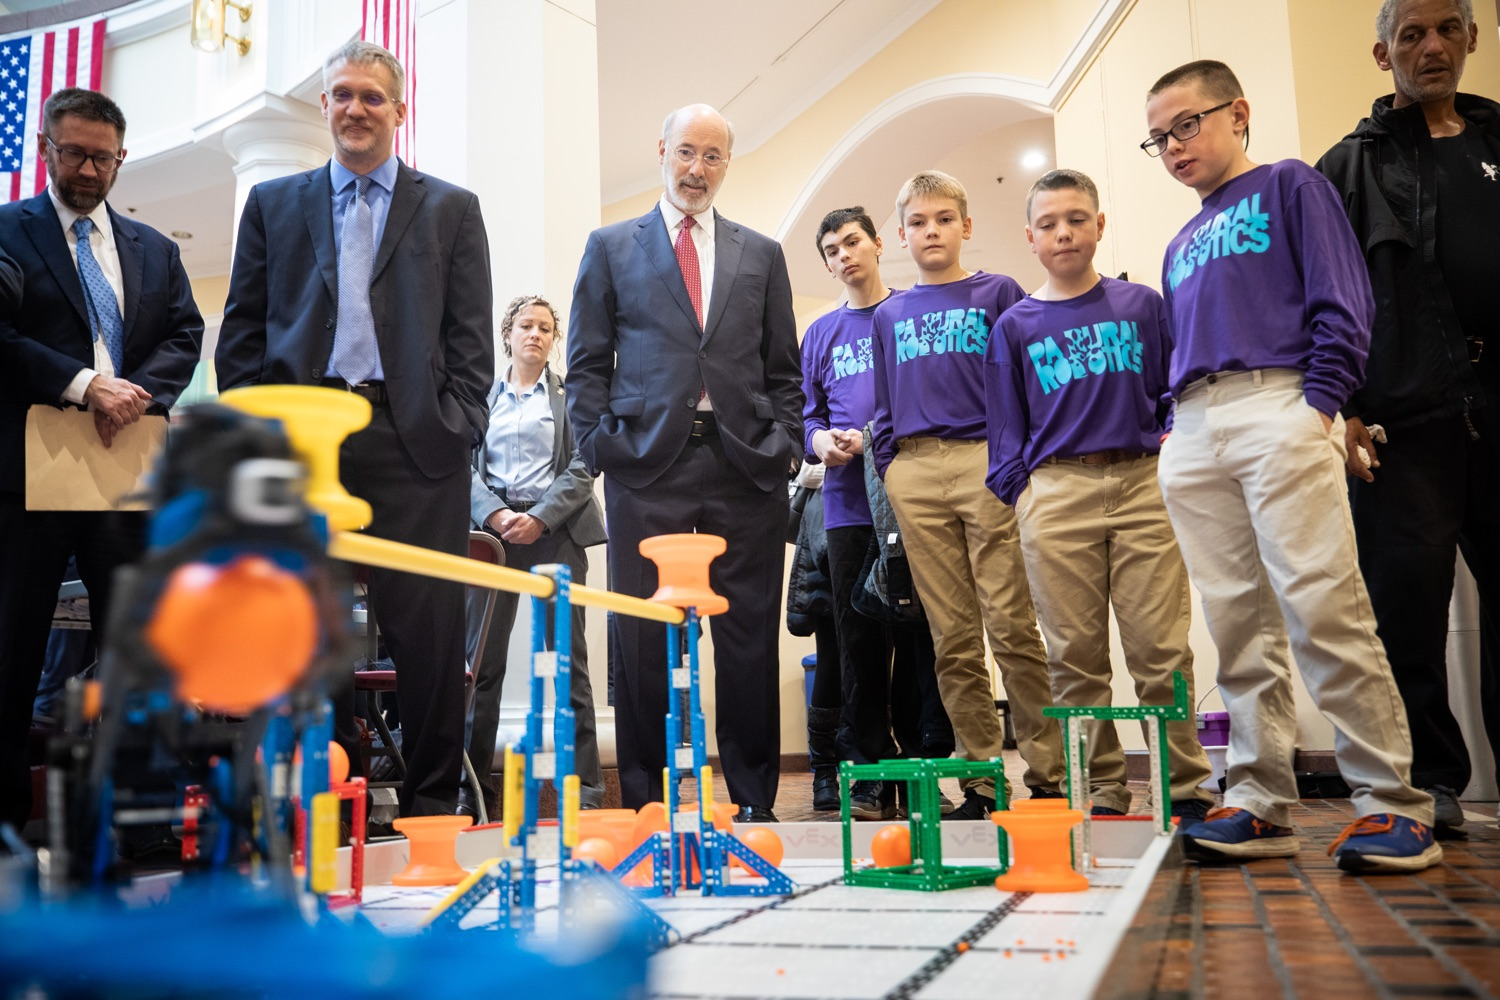 """<a href=""""https://filesource.wostreaming.net/commonwealthofpa/photo/17587_gov_pasmart_rural_robotics_dz_024.jpg"""" target=""""_blank"""">⇣Download Photo<br></a>Pennsylvania Governor Tom Wolf meeting with students at the robotics demonstration.Celebrating the success of the PAsmart workforce development program to create educational opportunities at schools across the commonwealth, Governor Tom Wolf welcomed more than 50 students from the Pennsylvania Rural Robotics Initiative to the Capitol today. The students from nine western Pennsylvania school districts showcased their skills in coding, robotics and drone technology. The Wolf administration awarded the initiative a $299,000 PAsmart Advancing Grant earlier this year. Harrisburg, PA  Tuesday, November 12, 2019"""